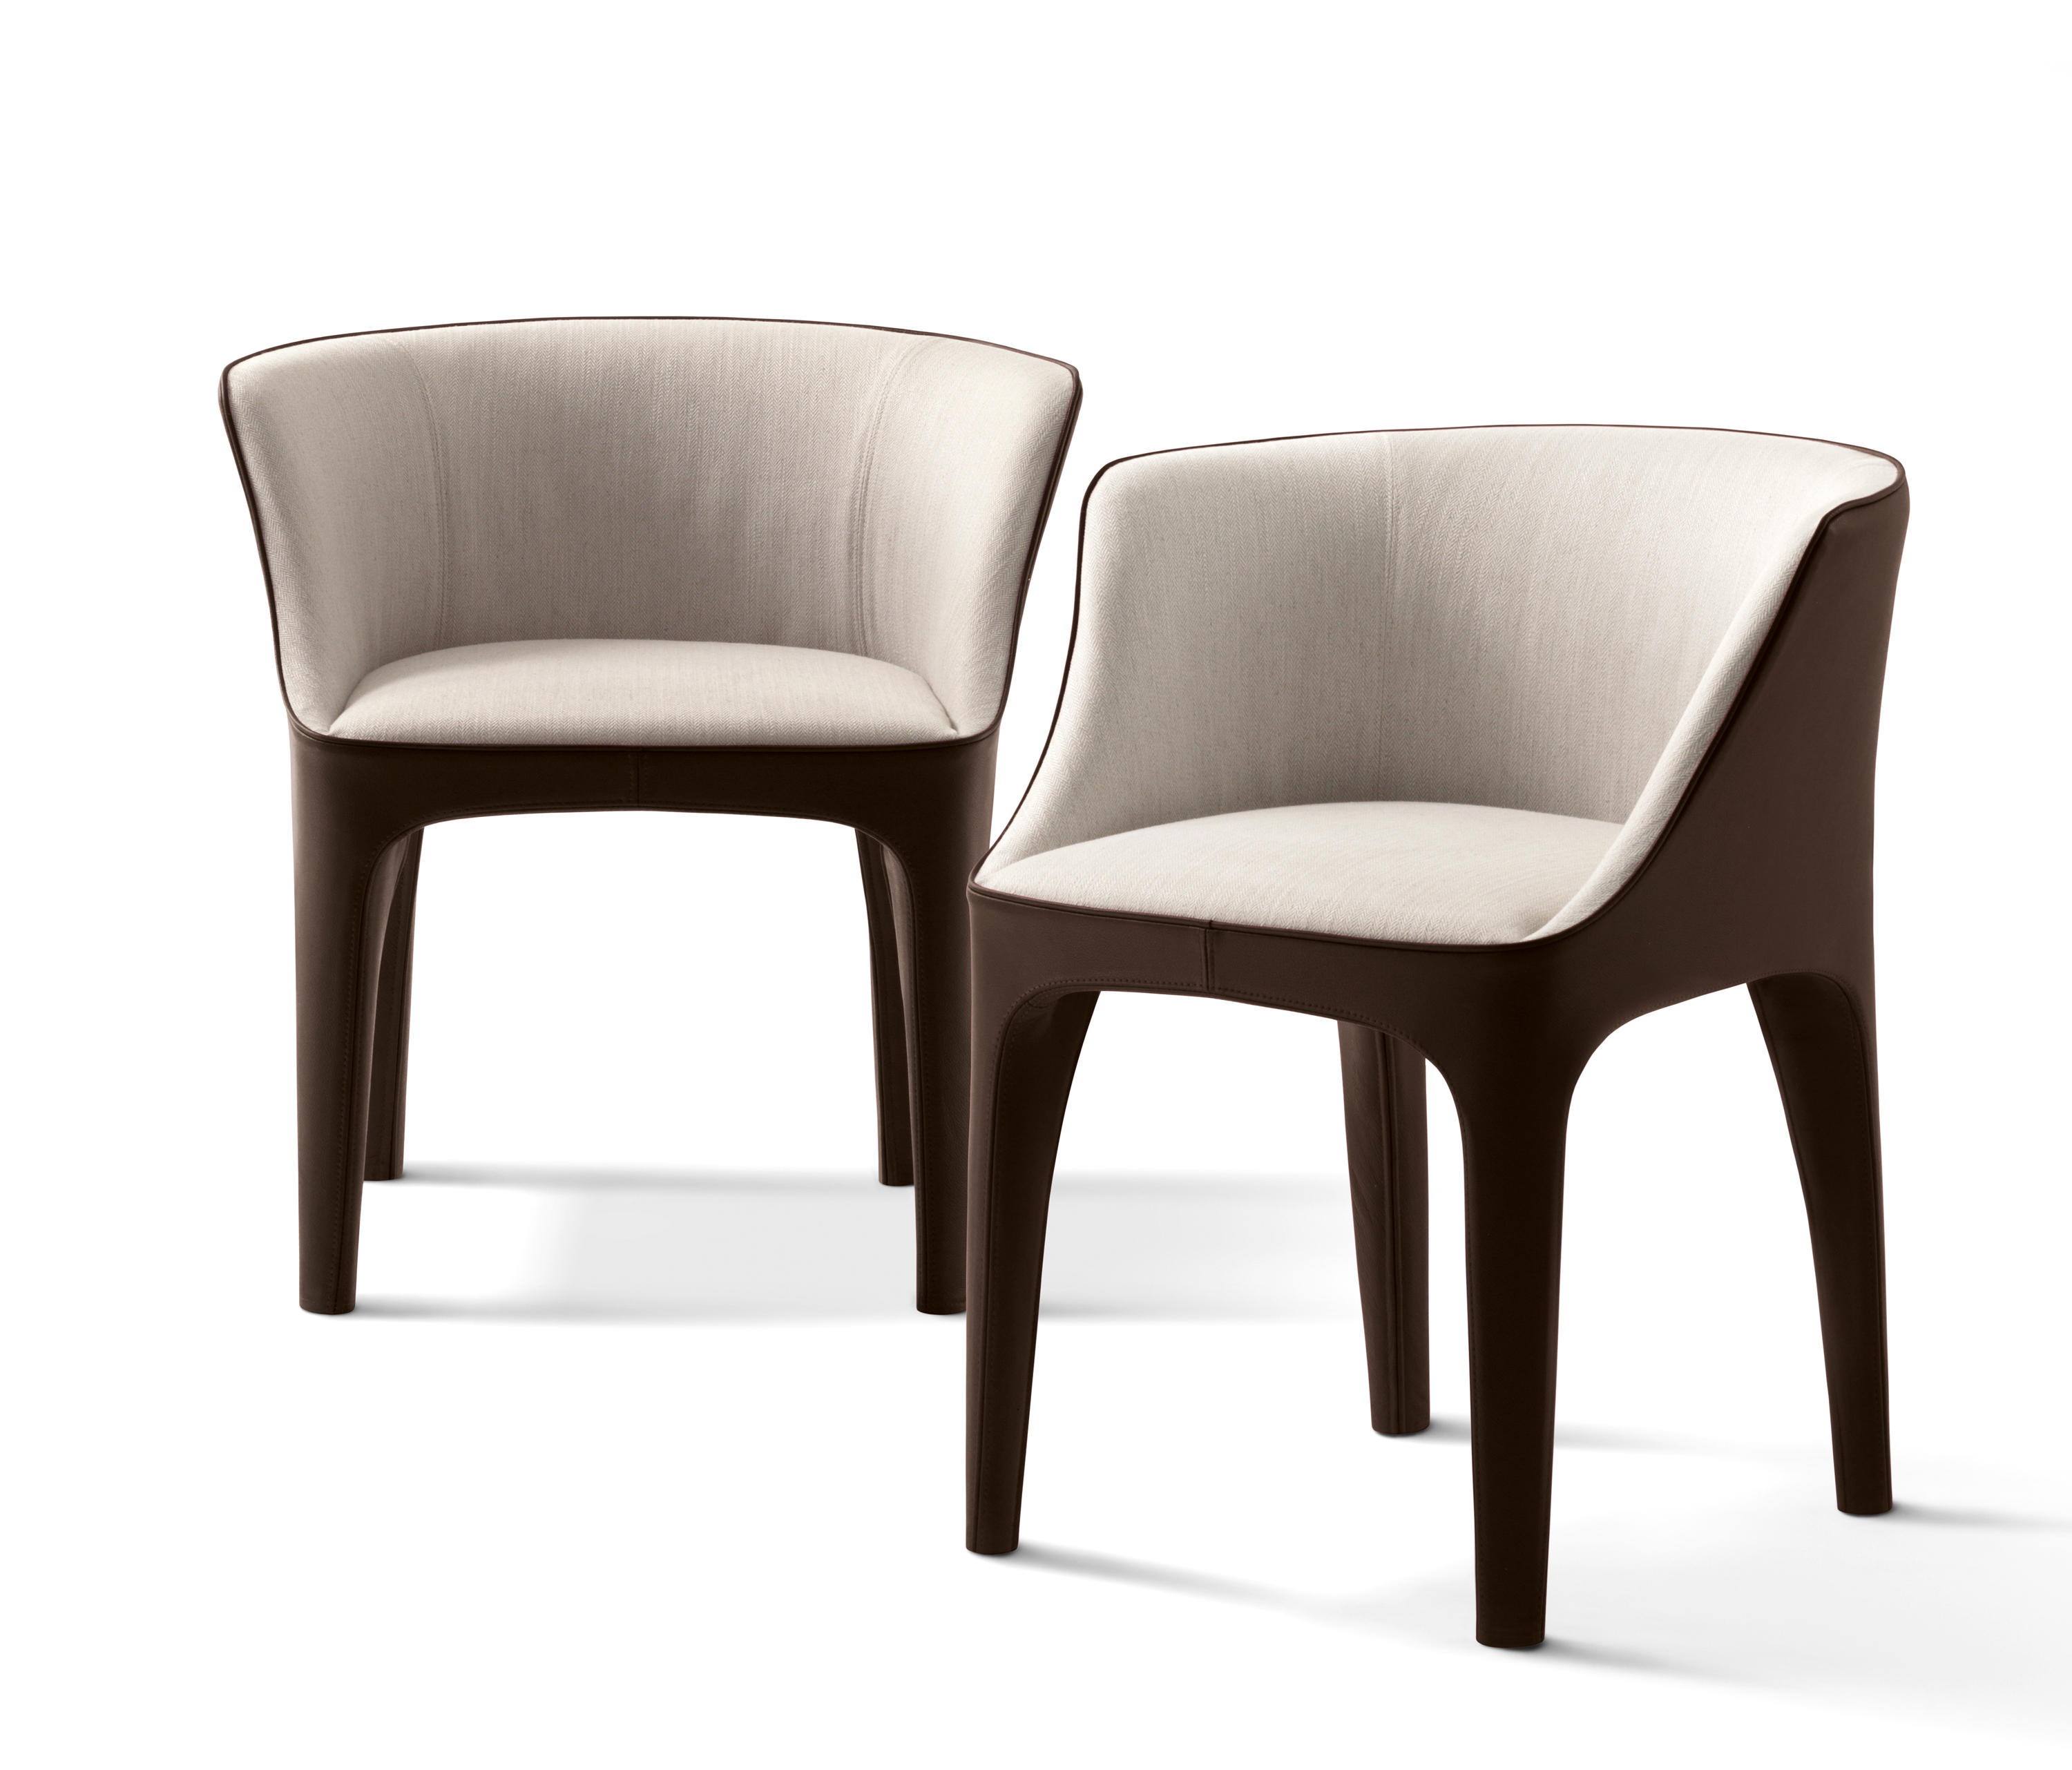 Diana Small Armchair Chairs From Giorgetti Architonic